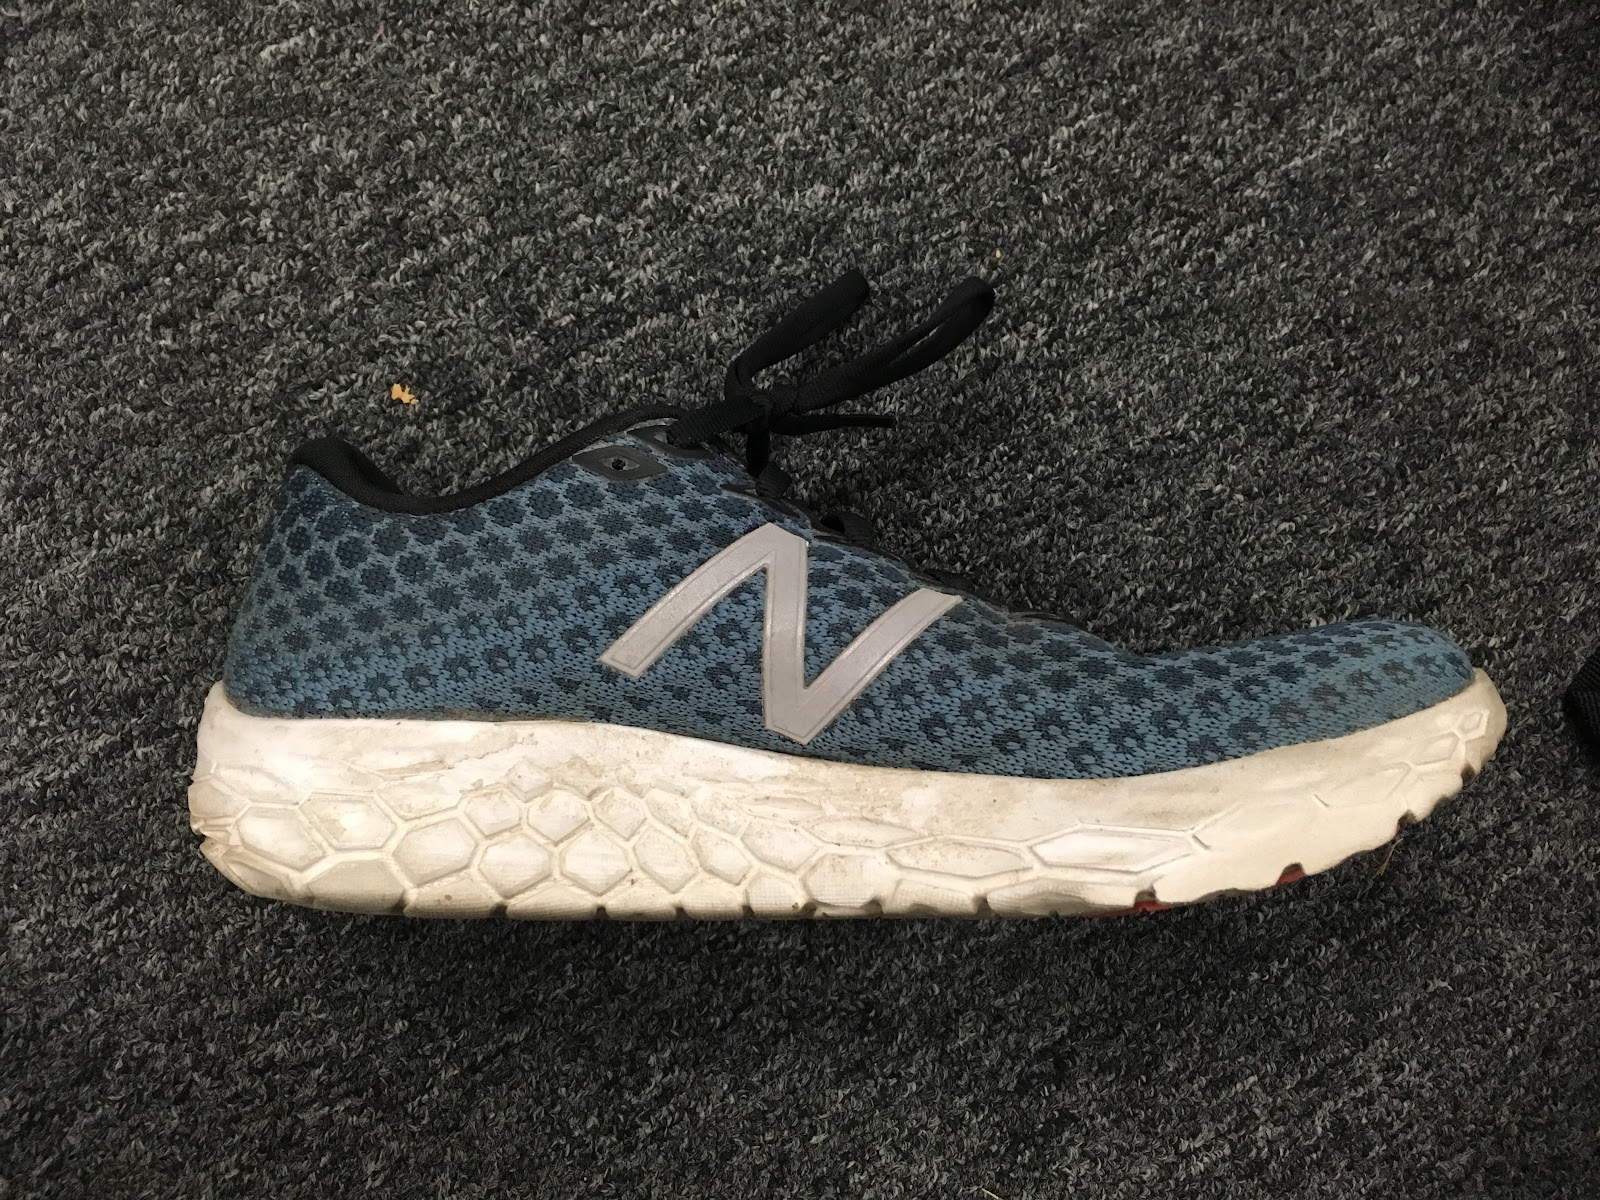 Chris has recently come off a healthy cross country season and has been  able to put some solid miles on this shoe. Read on for his thoughts! b37ef2225